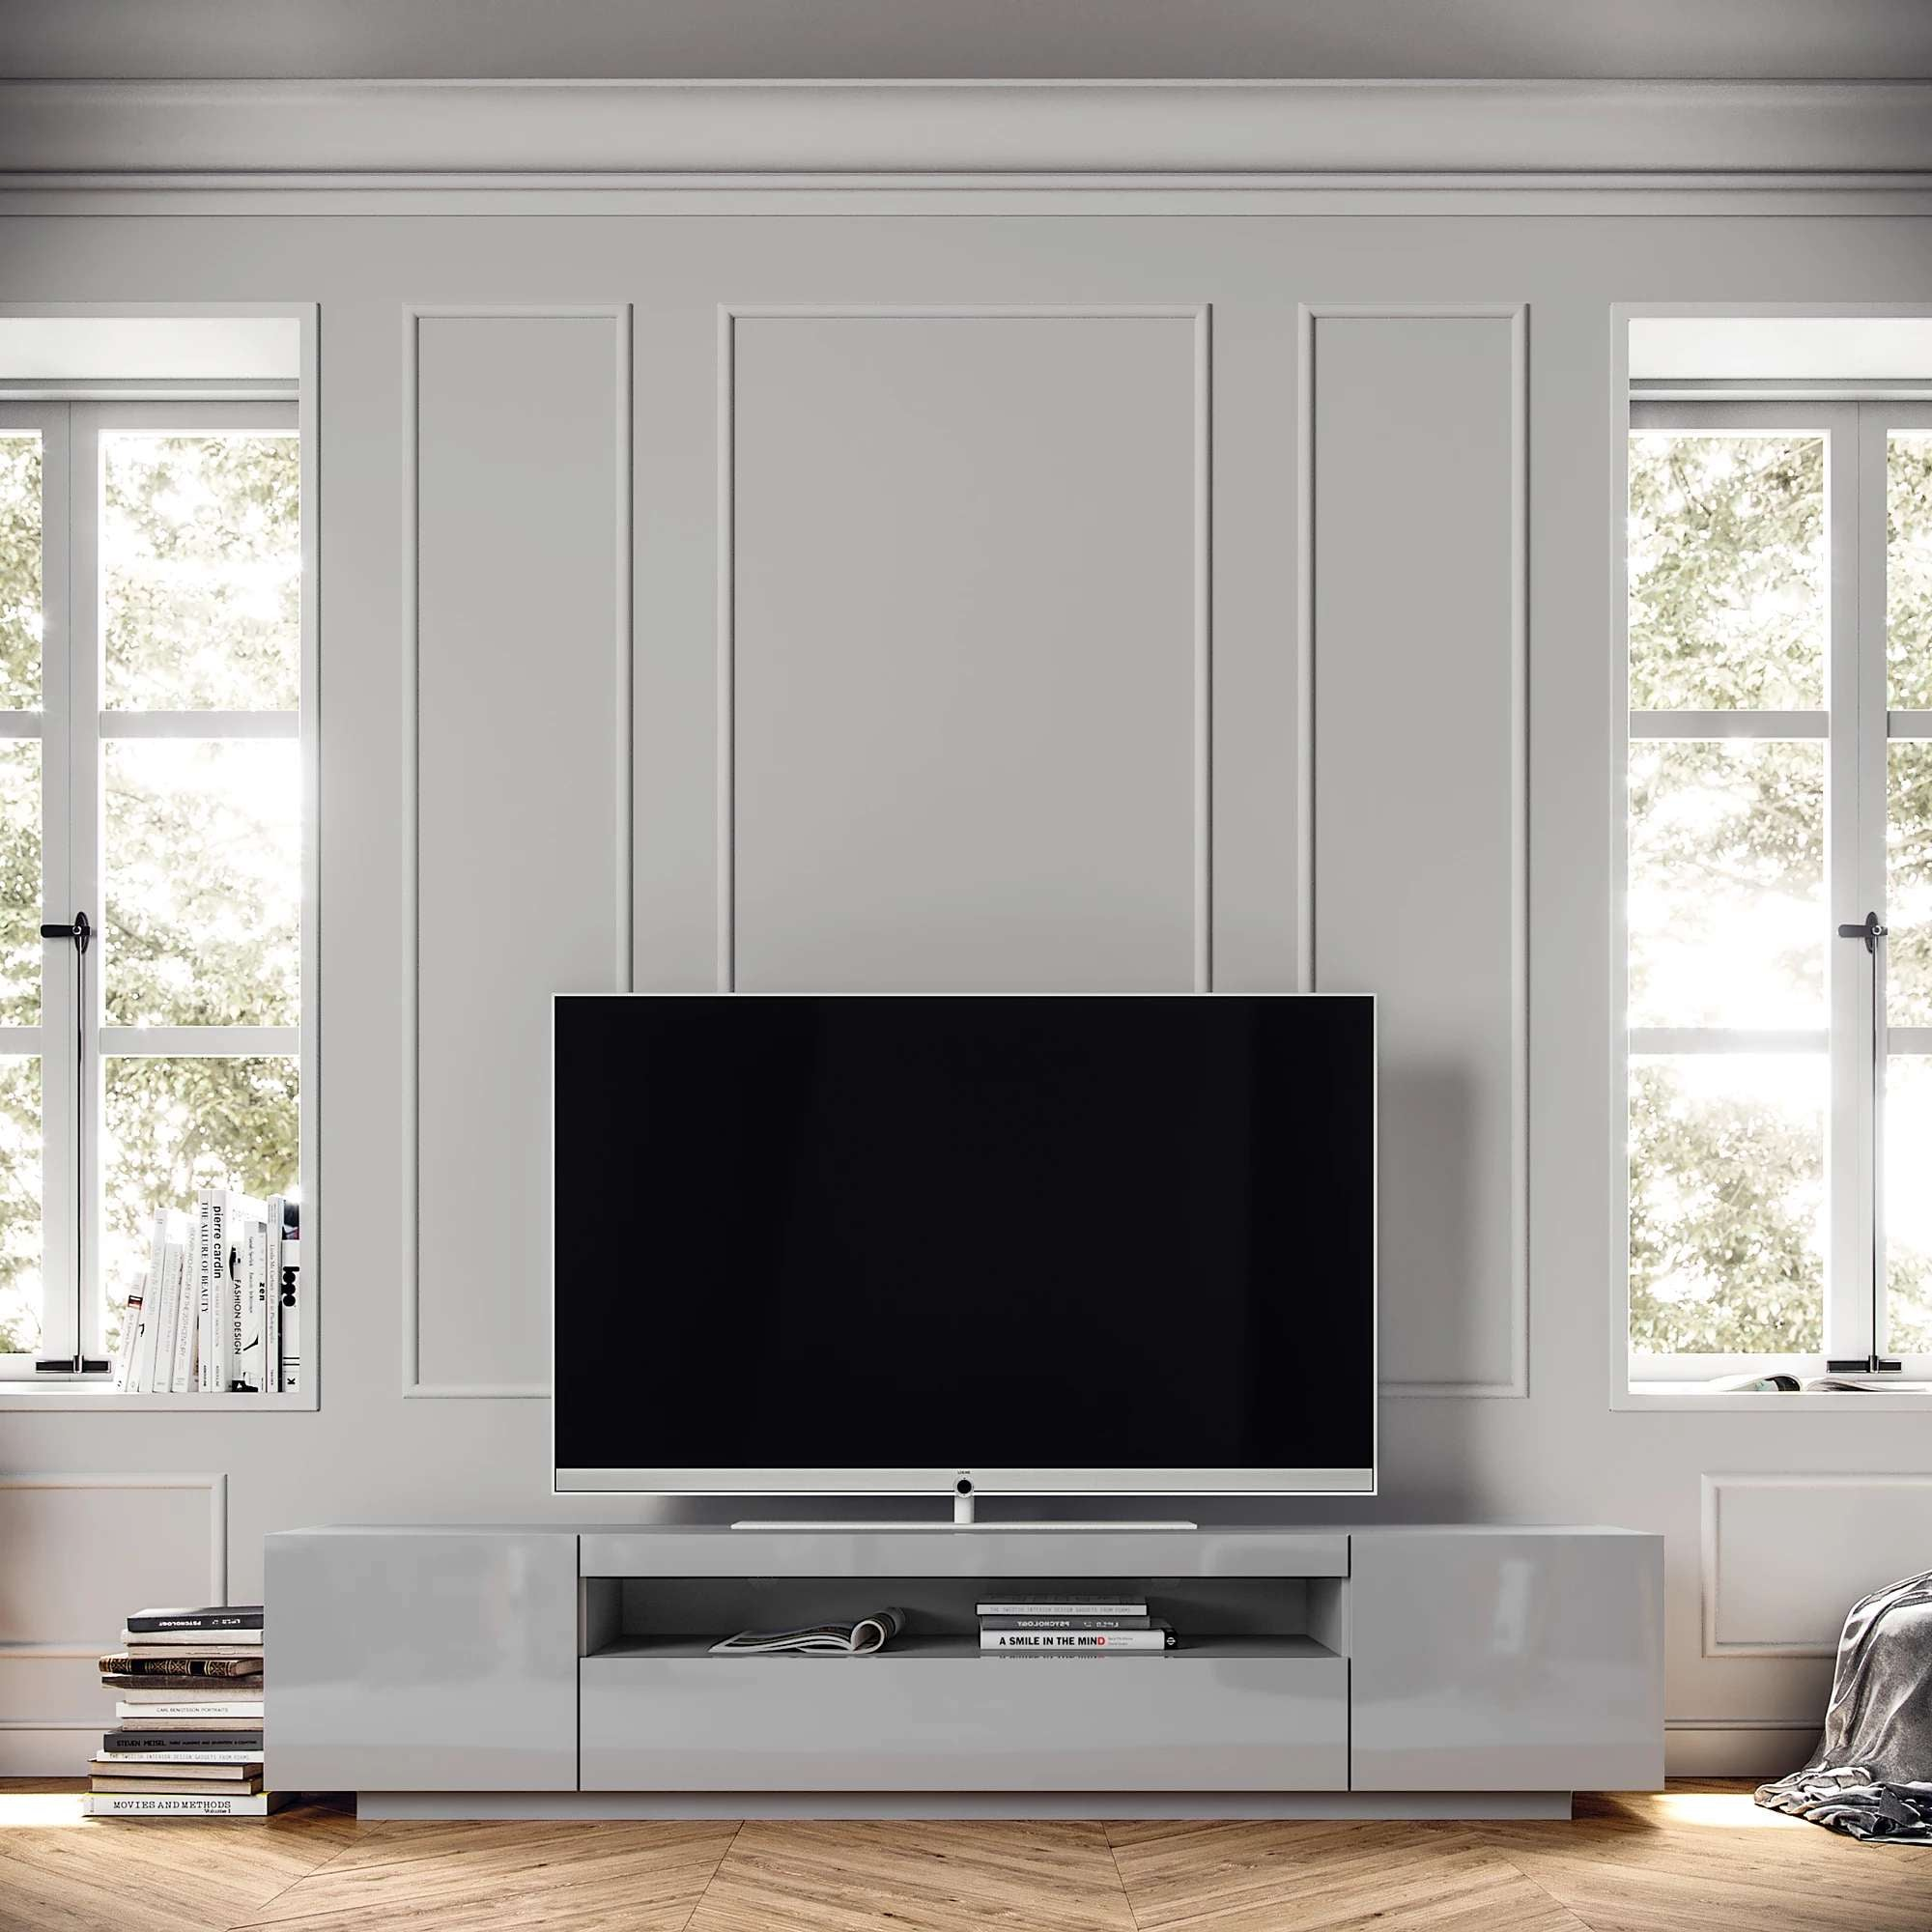 Gloss Light Grey Samso TV Cabinet - Modern & Contemporary Style | Central media console for TV Table with LED lighting